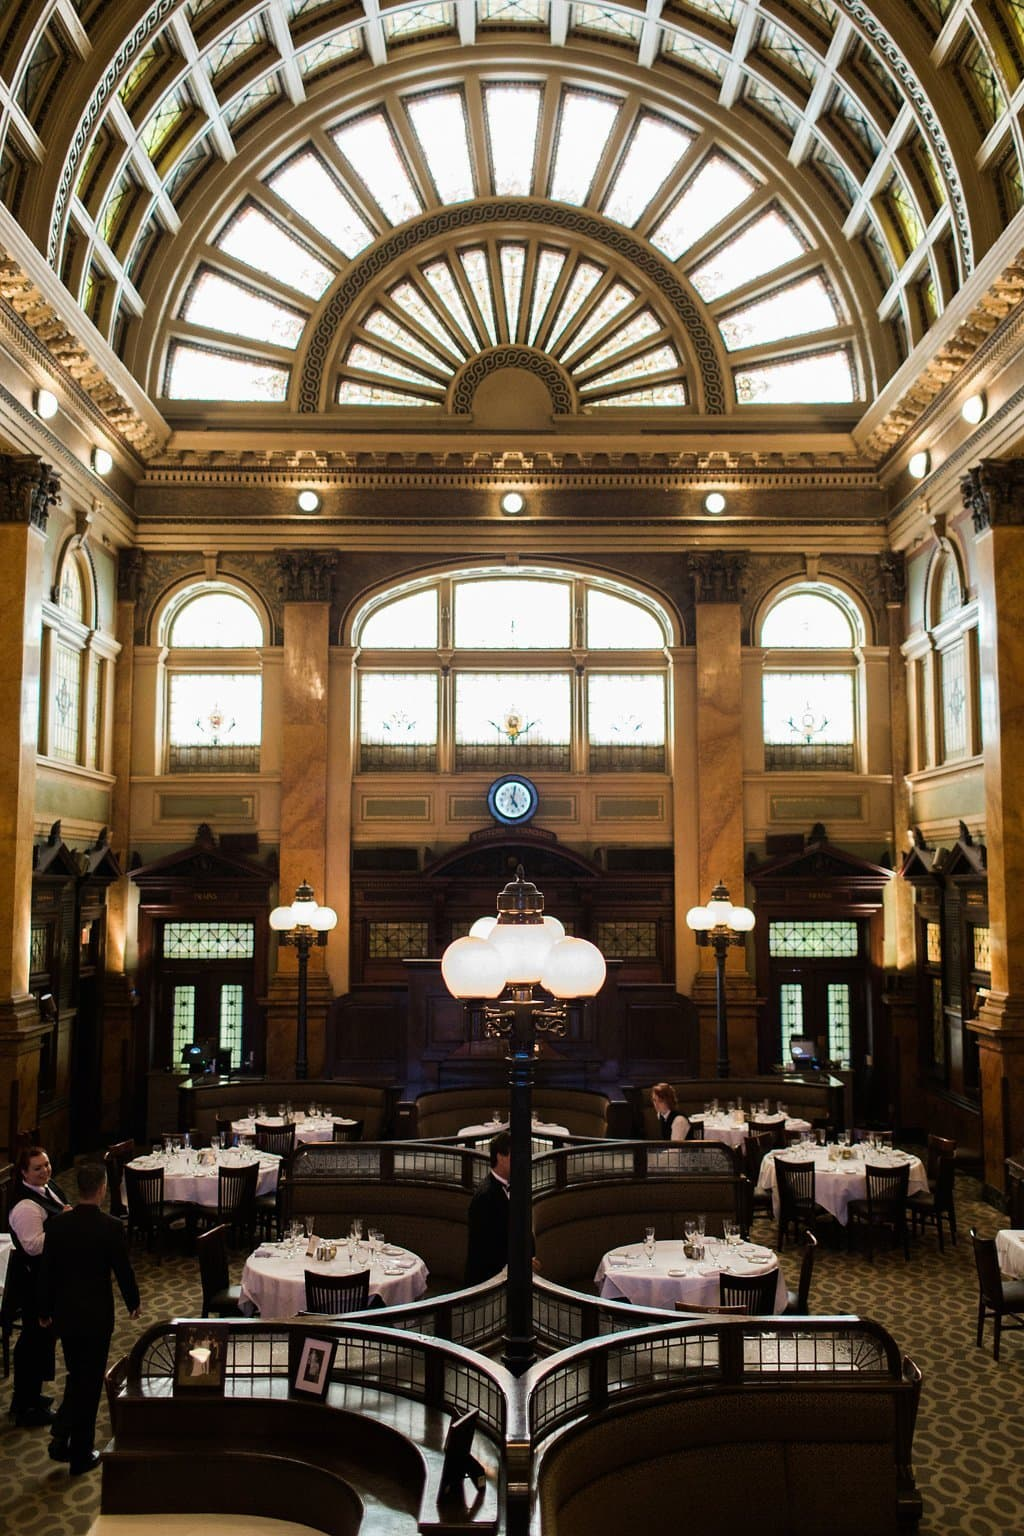 Grand Concourse Station Square Wedding Reception - 1920's inspired wedding Grand Concourse